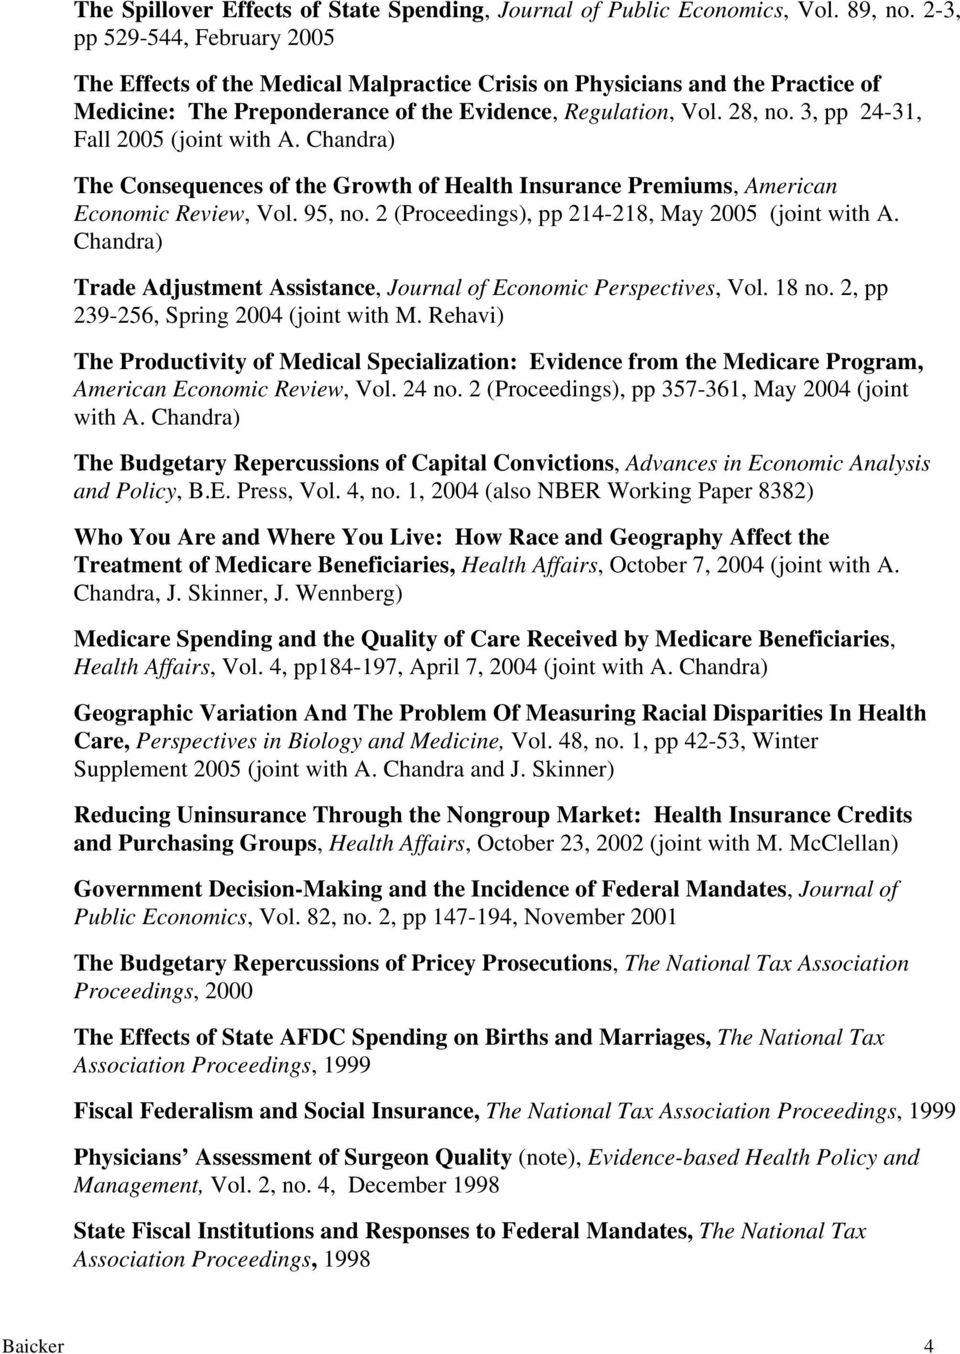 3, pp 24-31, Fall 2005 (joint with A. Chandra) The Consequences of the Growth of Health Insurance Premiums, American Economic Review, Vol. 95, no. 2 (Proceedings), pp 214-218, May 2005 (joint with A.